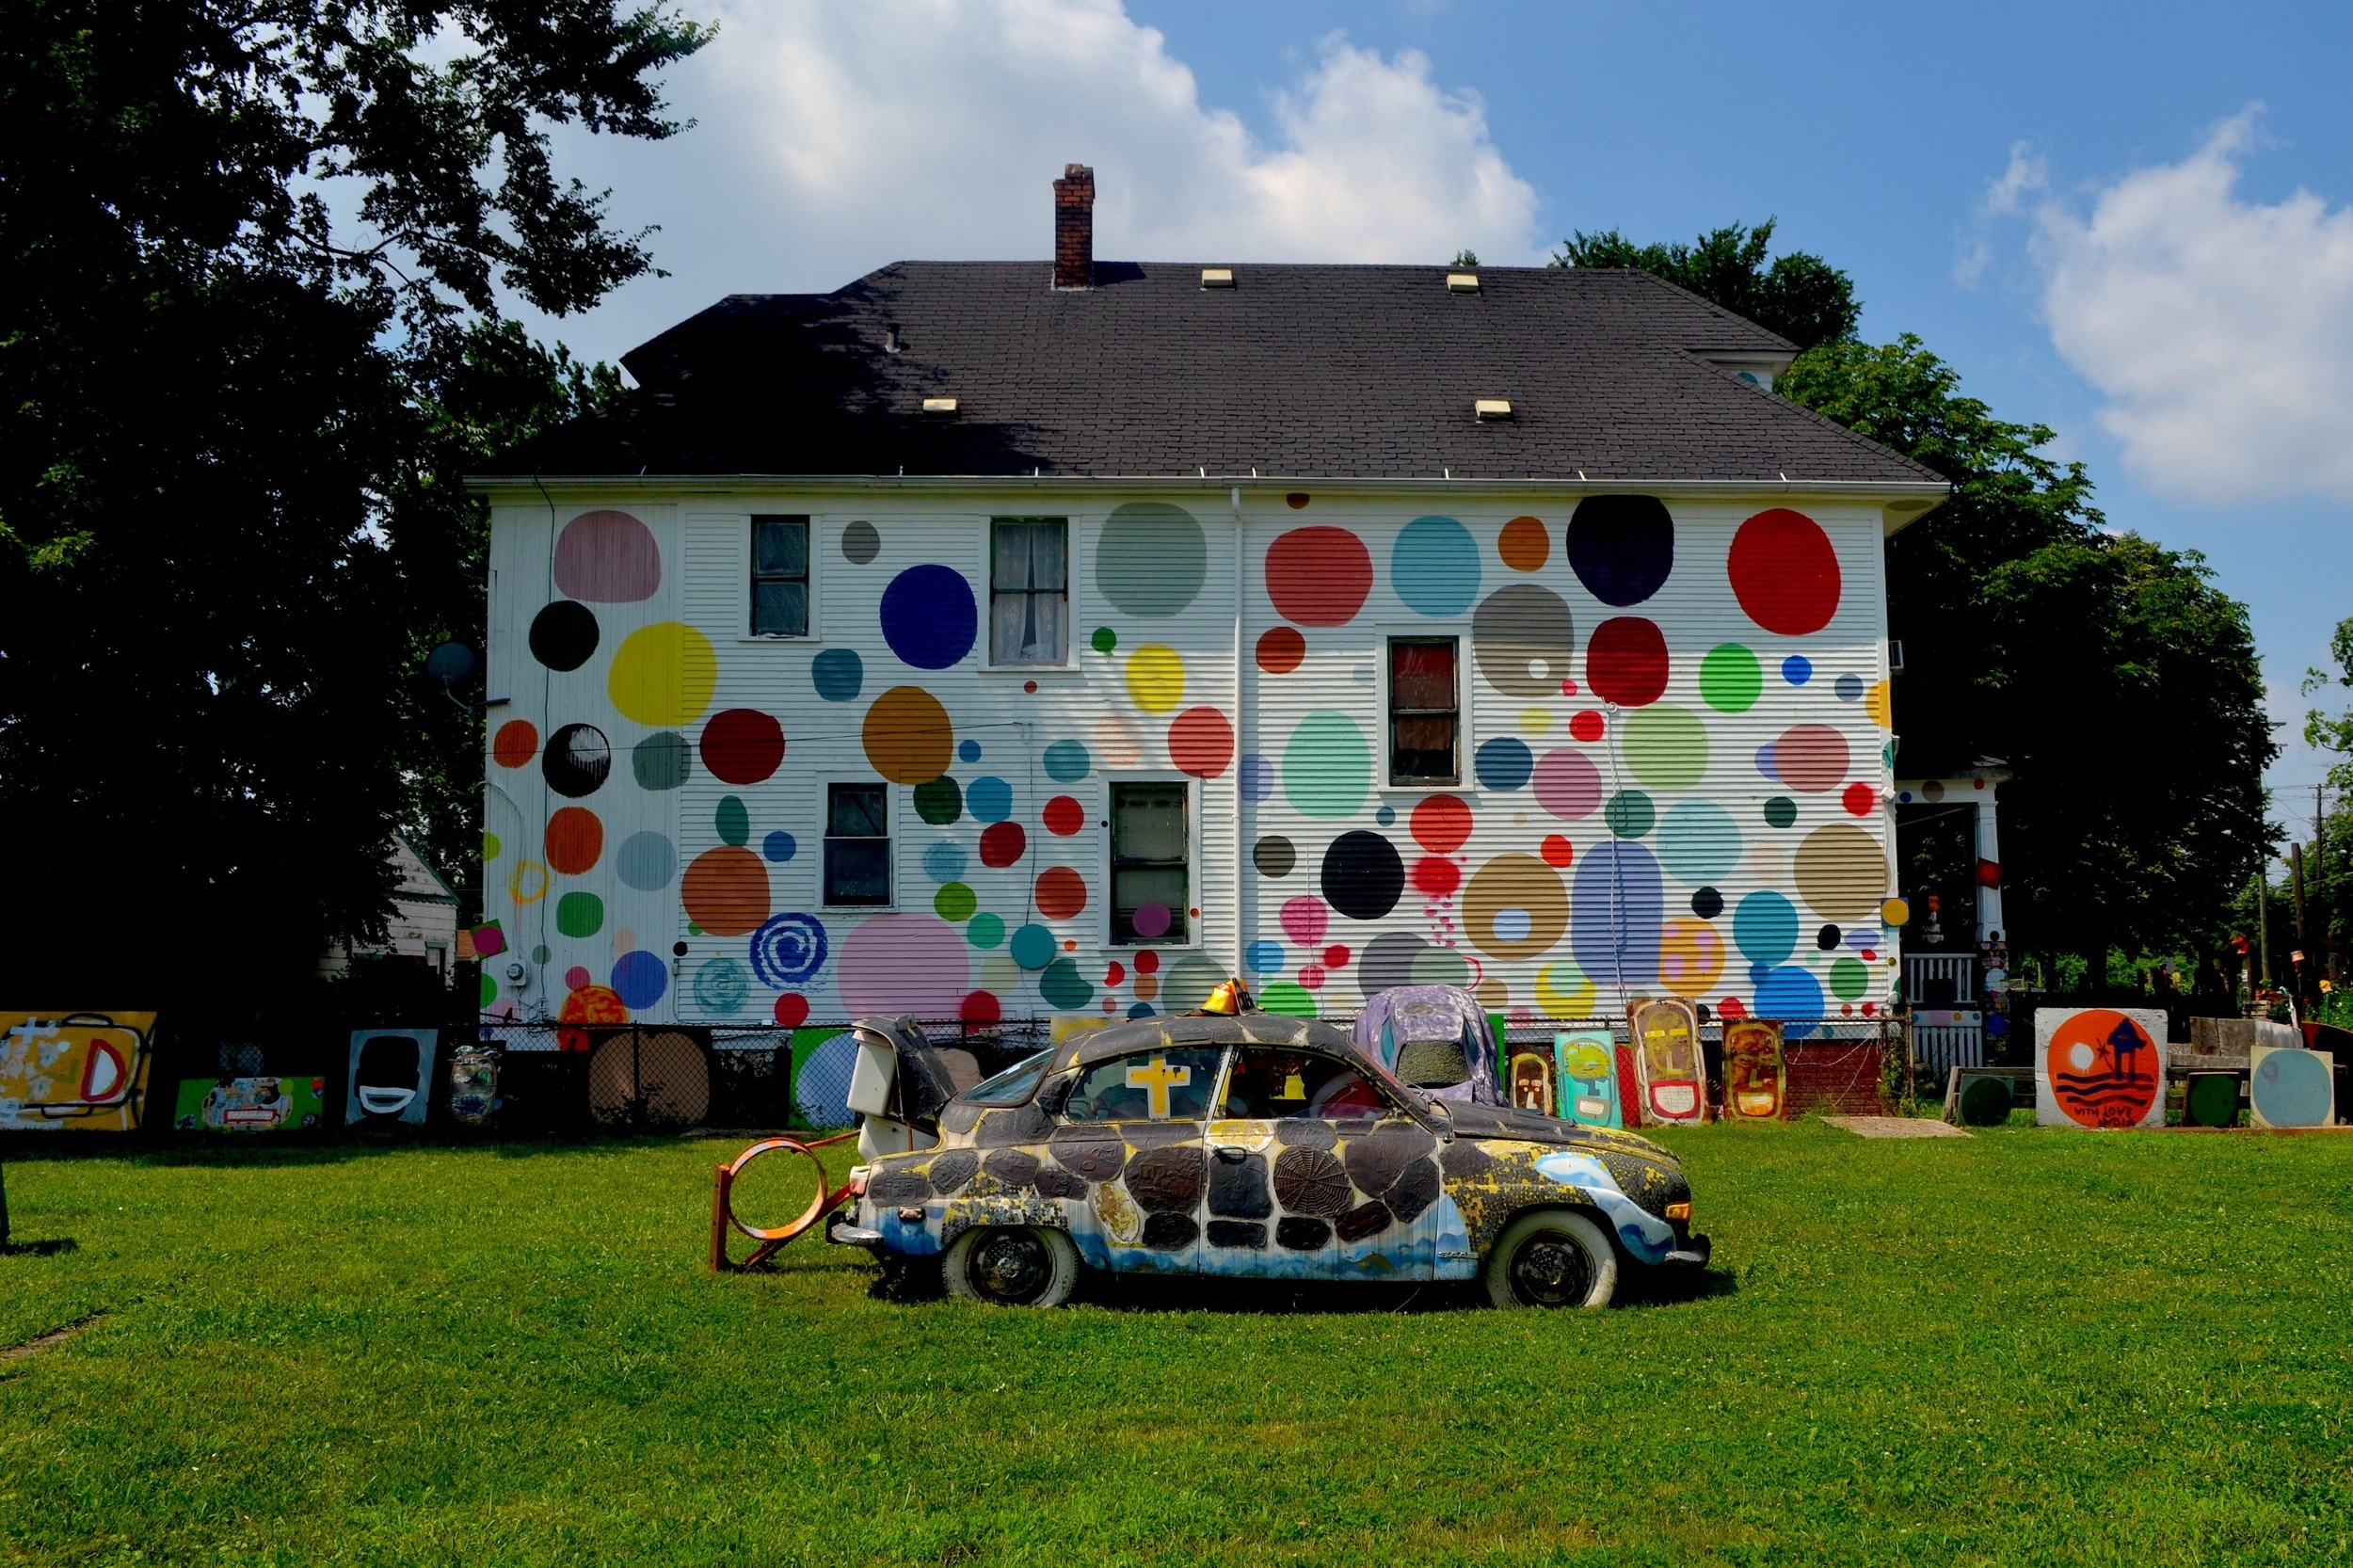 Dotty+Wotty+House.jpg